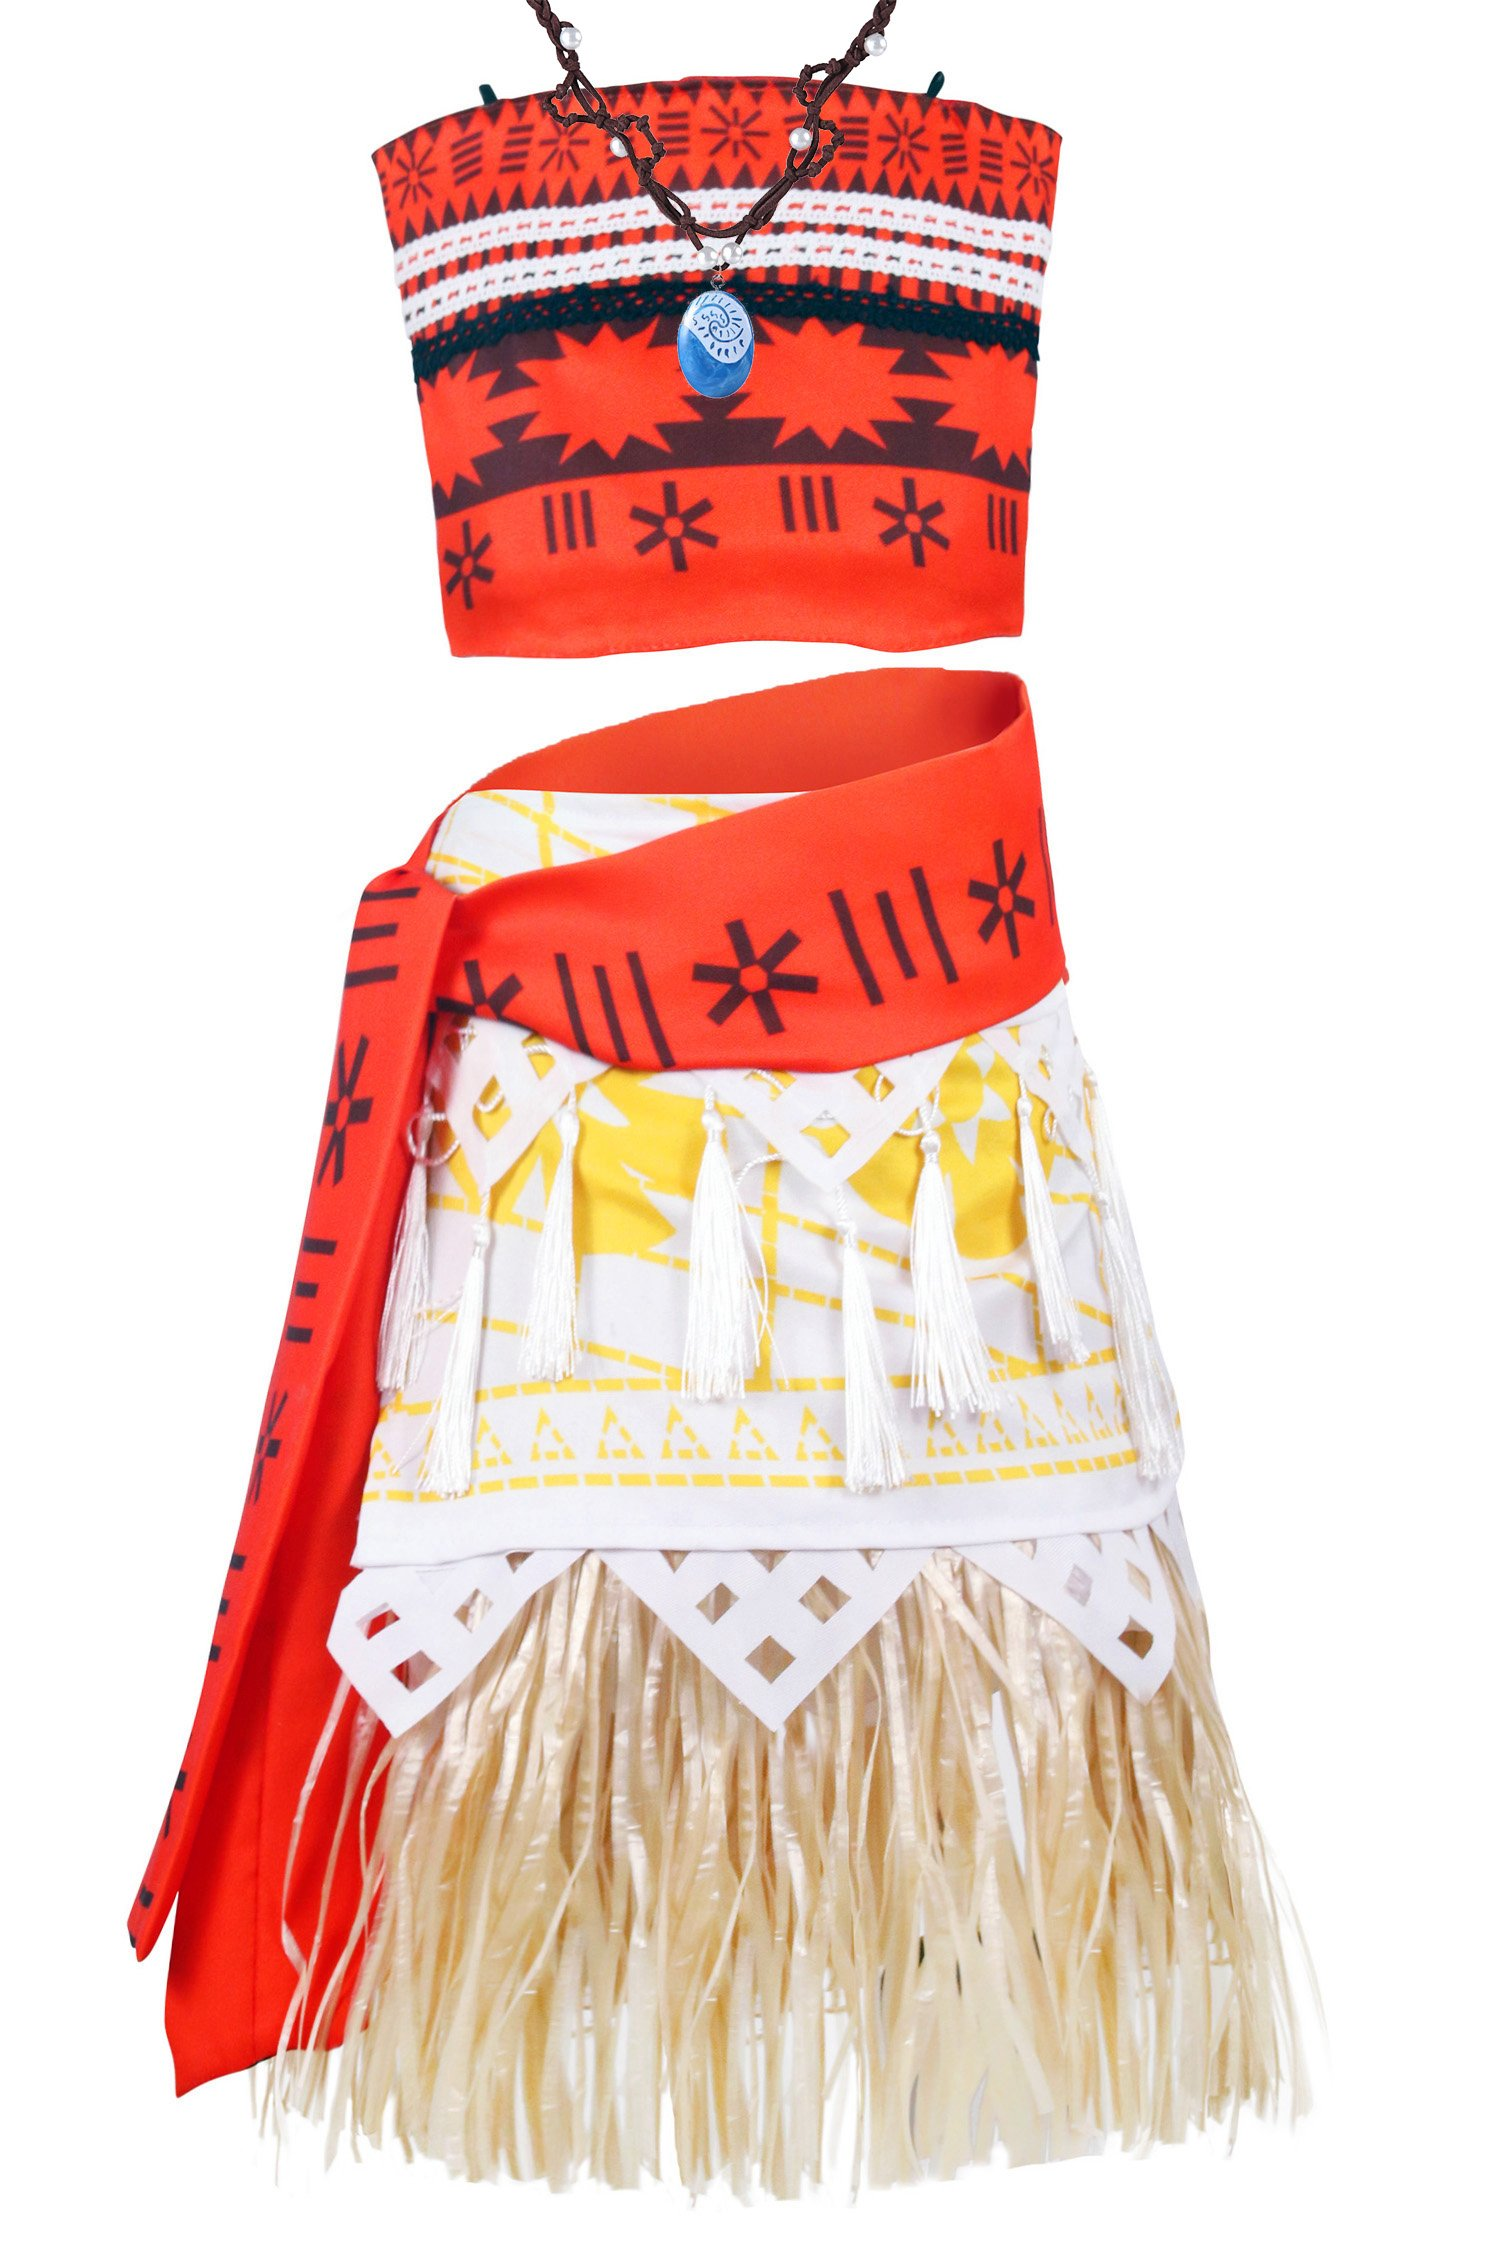 Wenge Princess Moana Outfit Adventure Costume Skirt Set Necklace Cosplay for Women Girls ( 11-12 Years/Tag Size Medium, Multicolored)